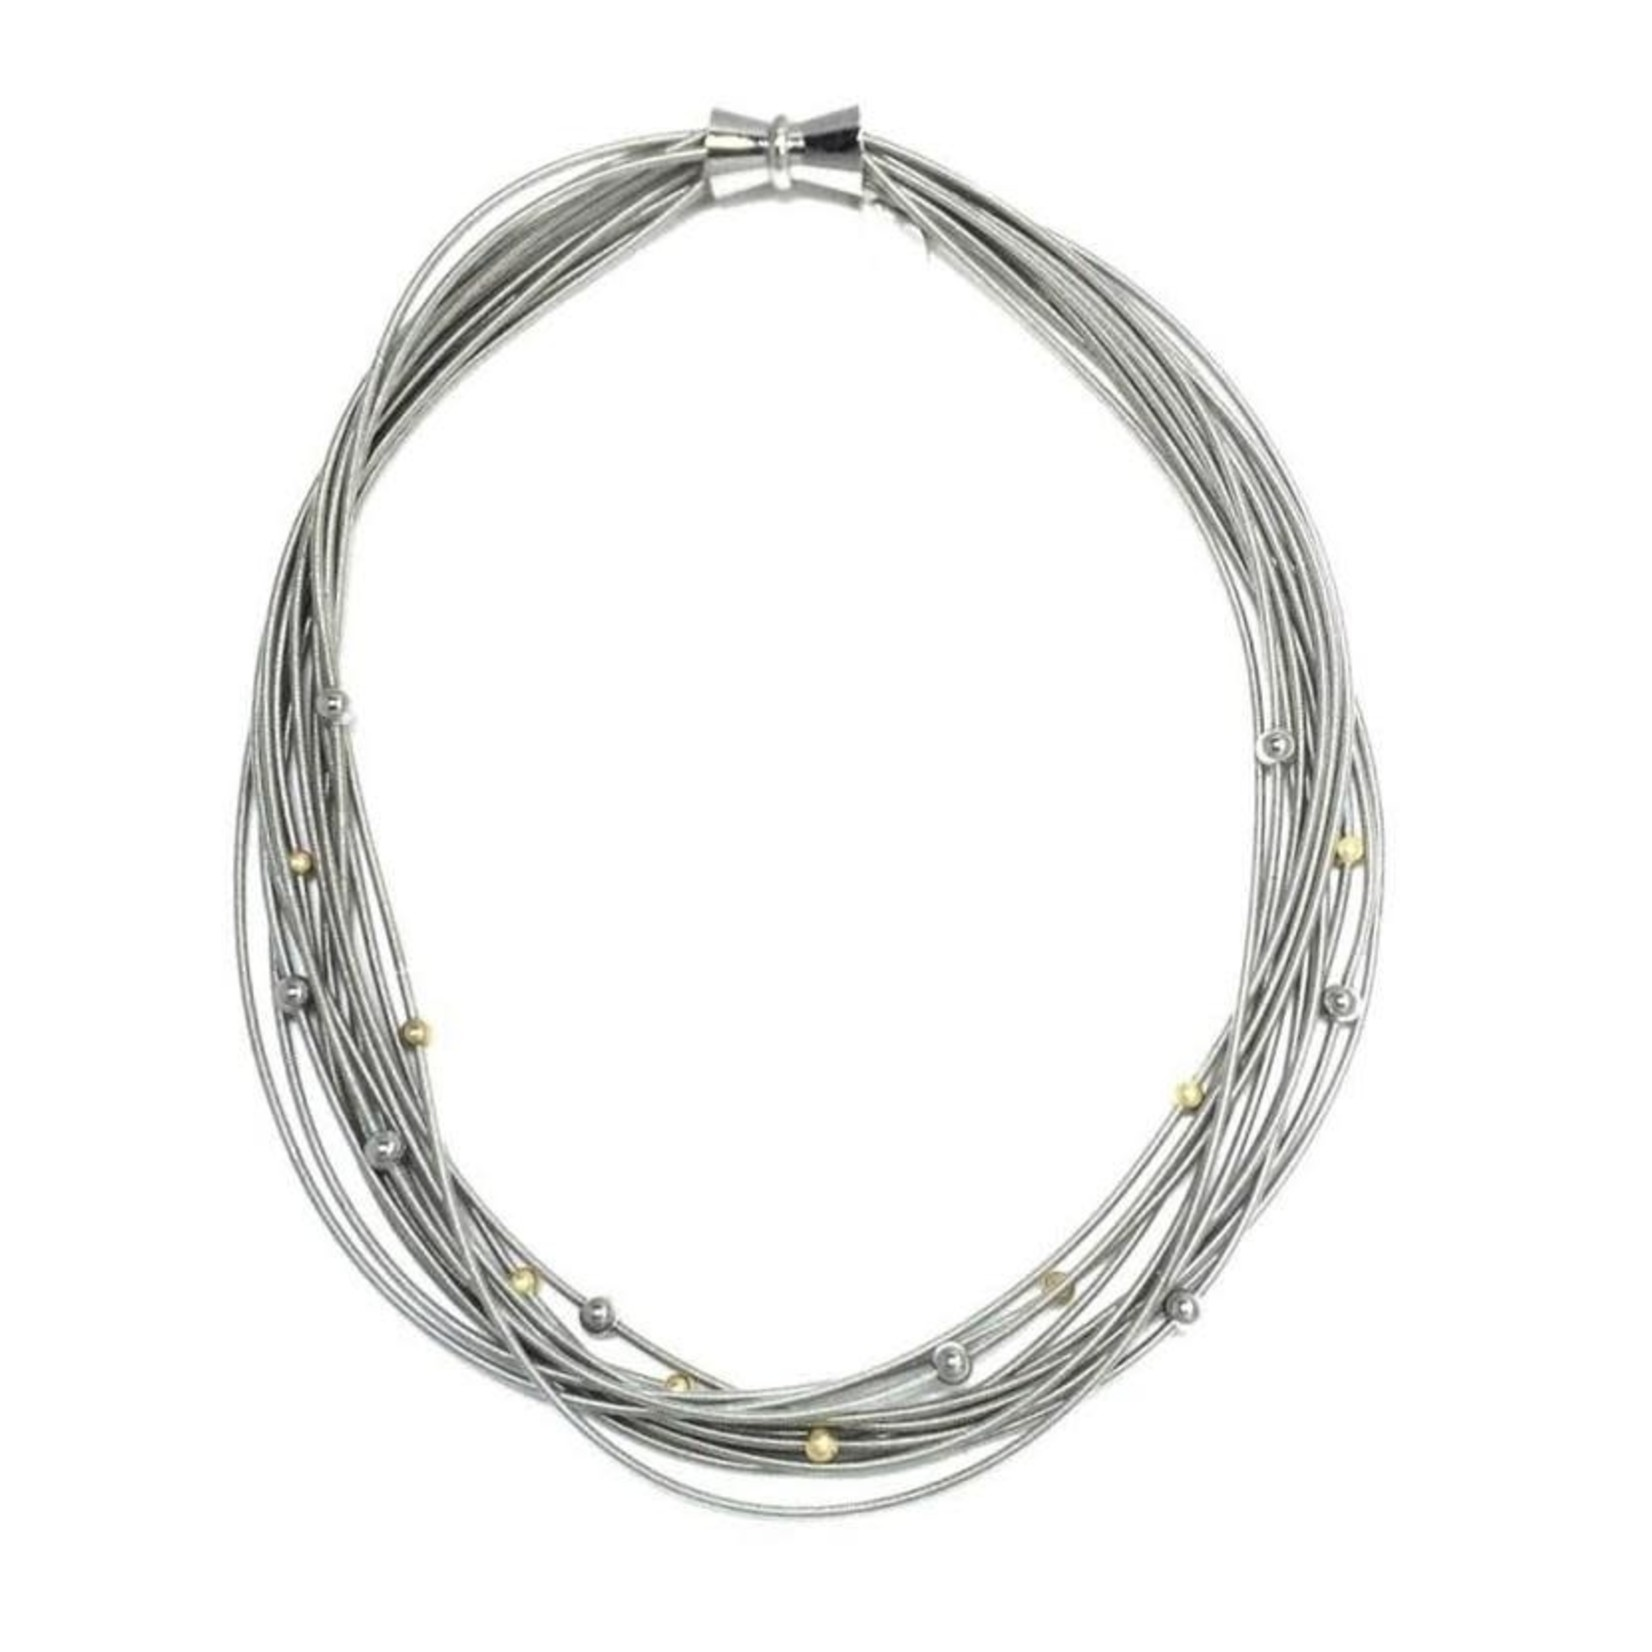 Sea Lily Silver Piano Wire Necklace w/ Silver/Gold Beads